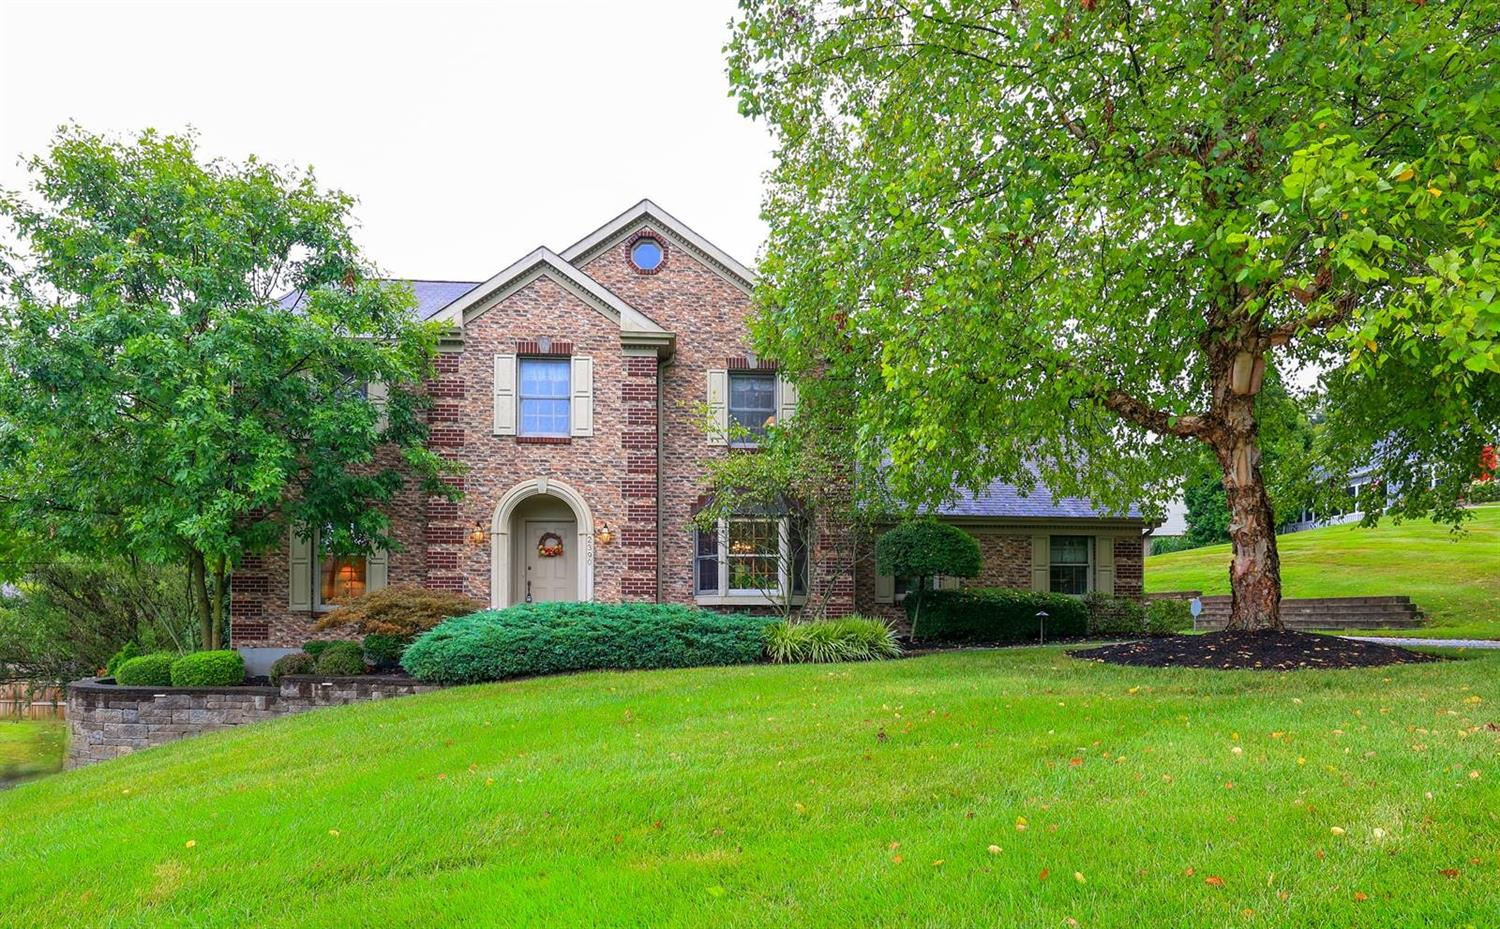 Beautiful Brick Exterior with manicured, mature landscaping.